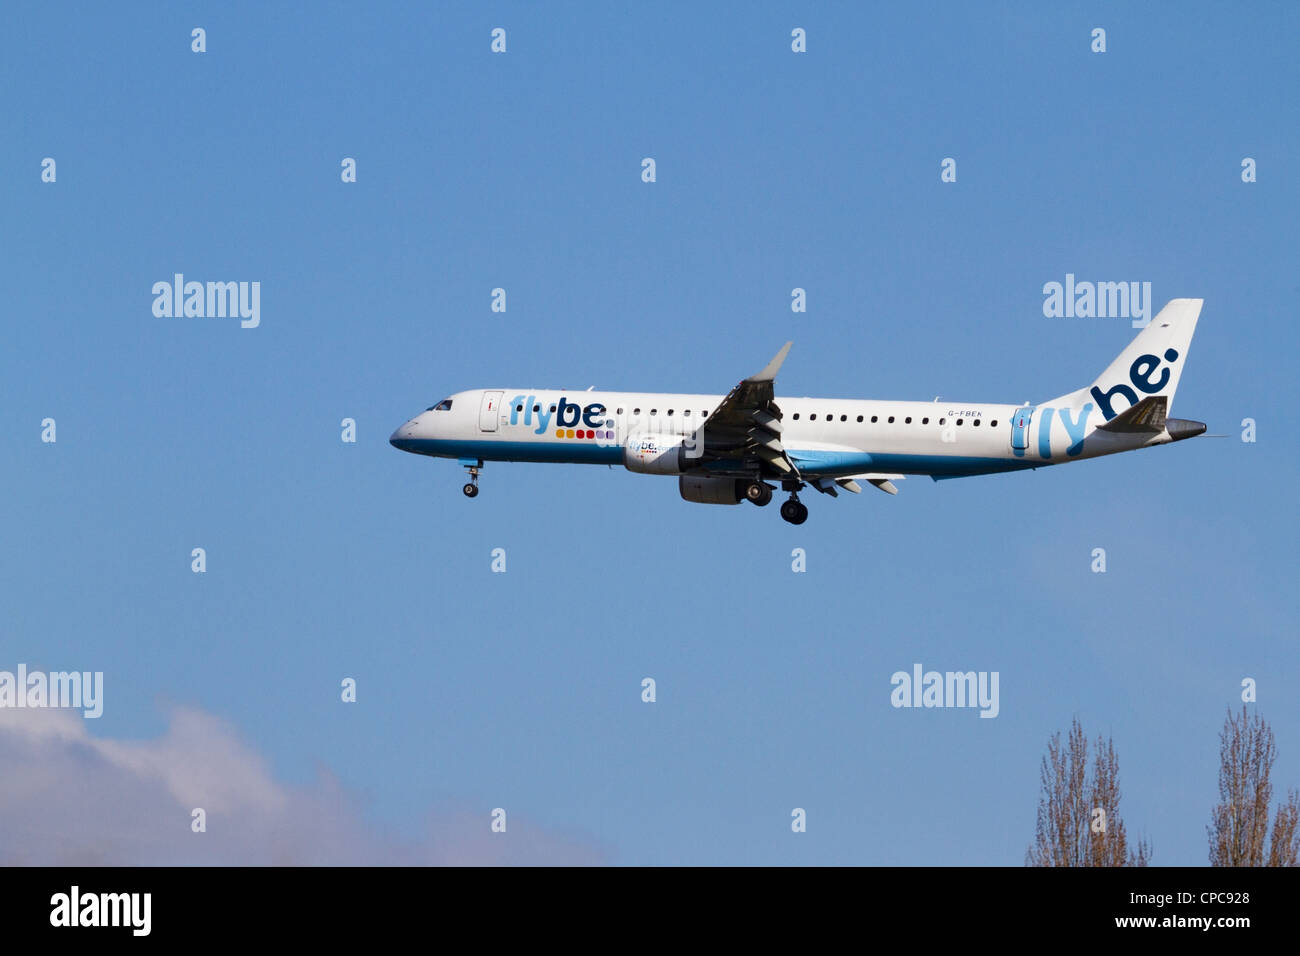 Flybe aircraft with landing gear down ready to land at Southampton Airport, Hampshire - Stock Image